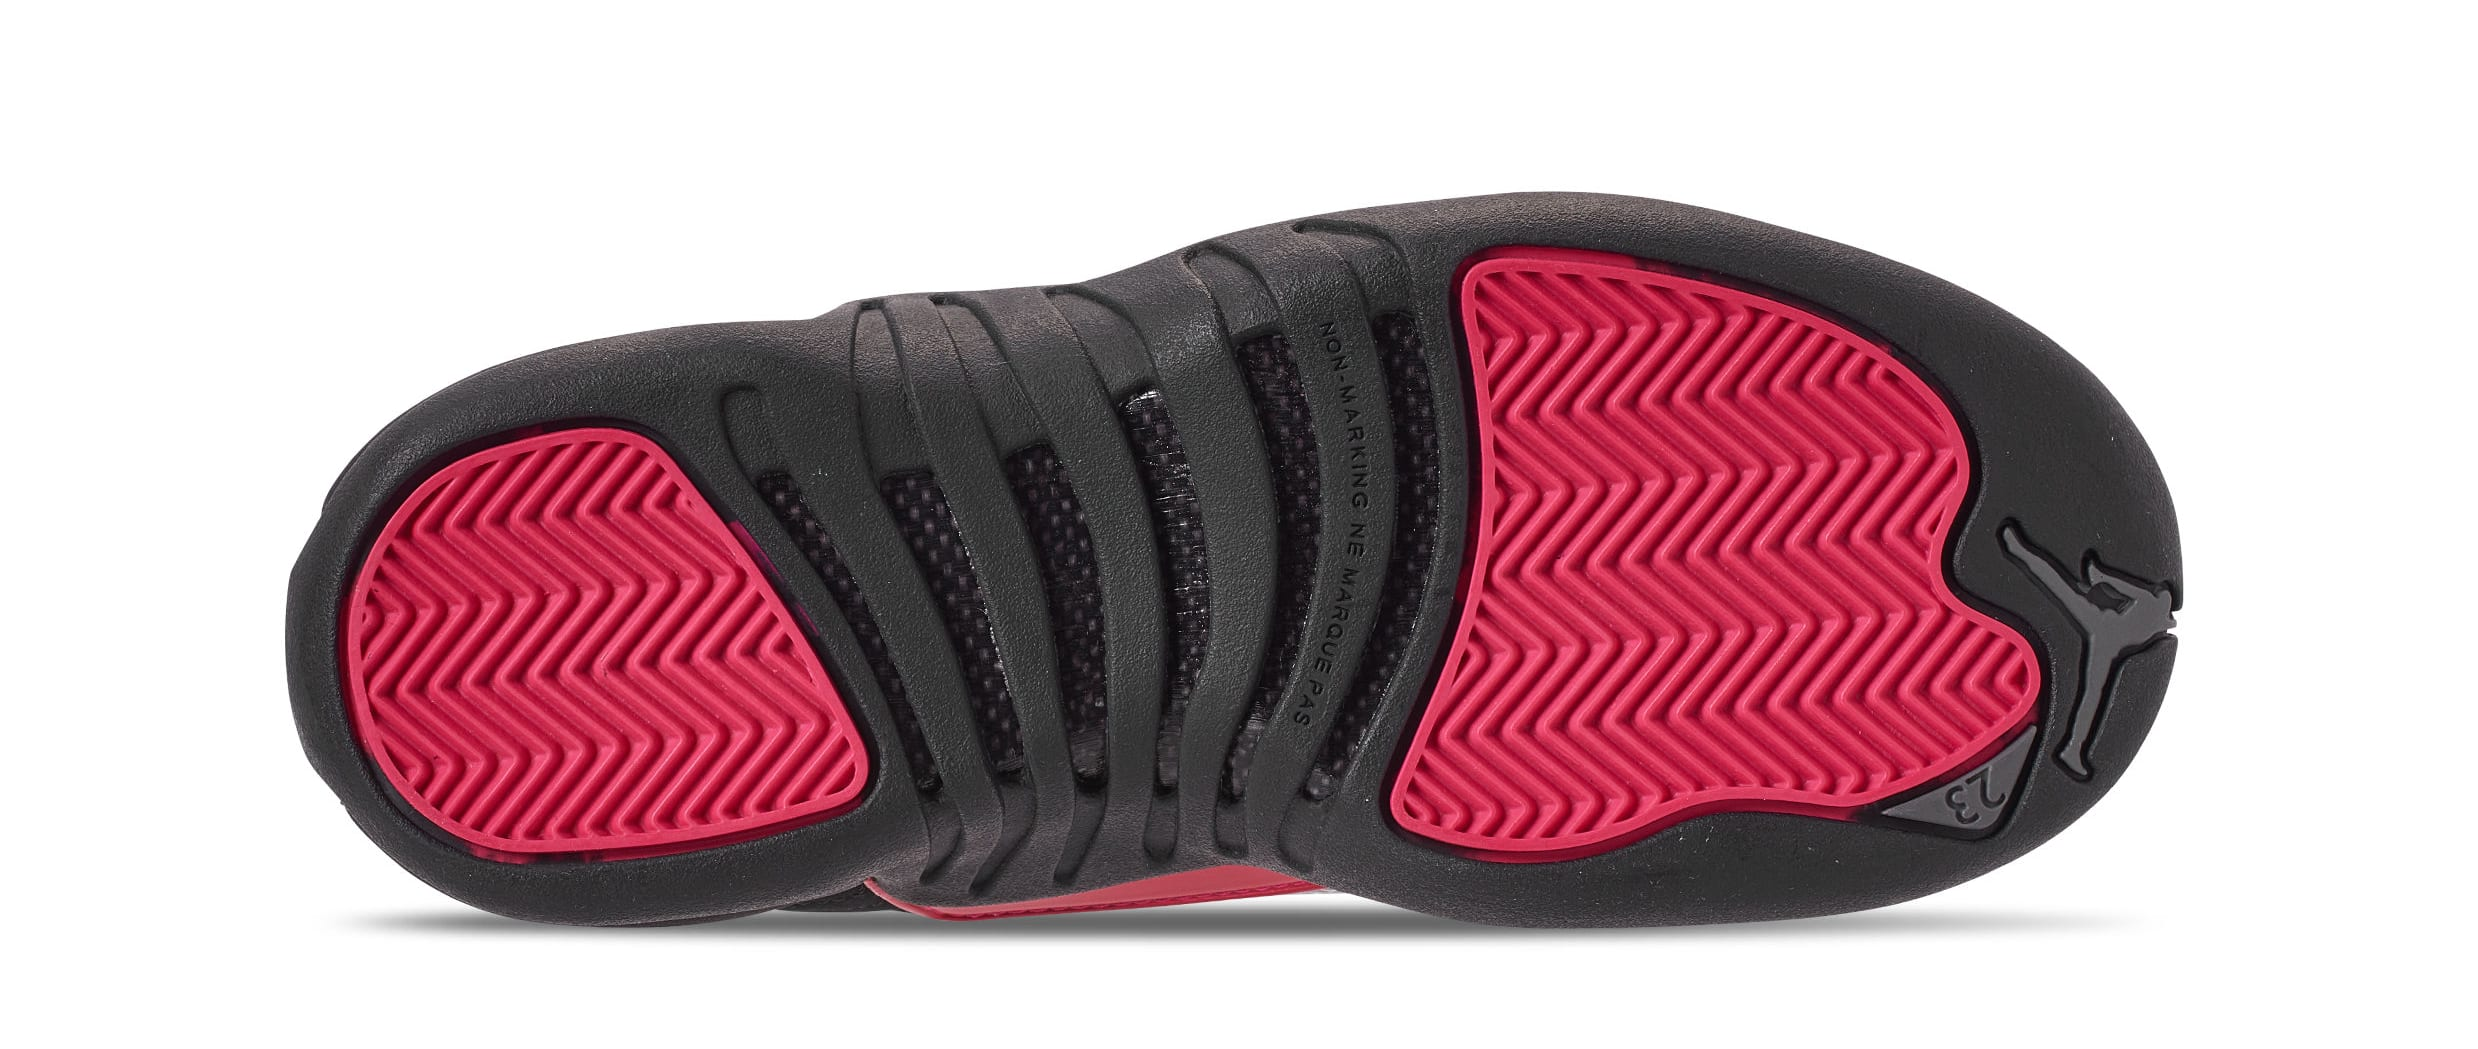 7a38d63072b Air Jordan 12 Retro GG 'Black/Dark Grey-Rush Pink' 510815-006 Release Date  | Sole Collector